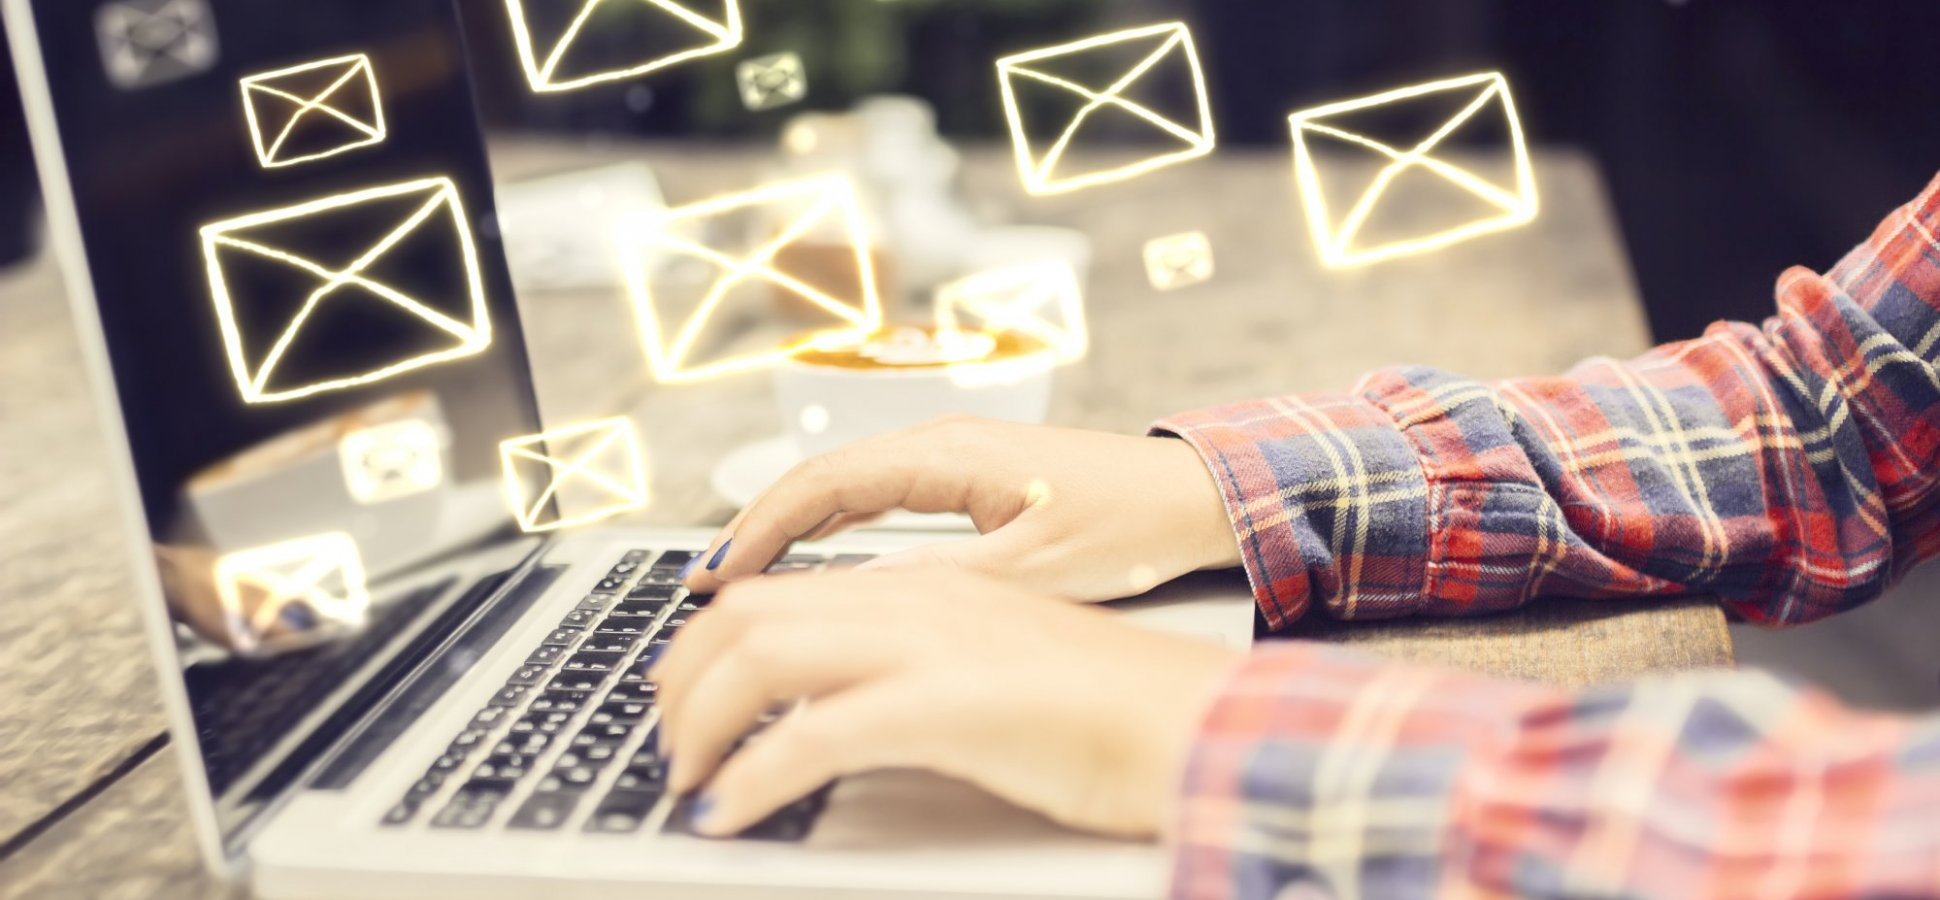 5 Signs Email Is Ruling Your Life (And 7 Ways to Take Back Control)